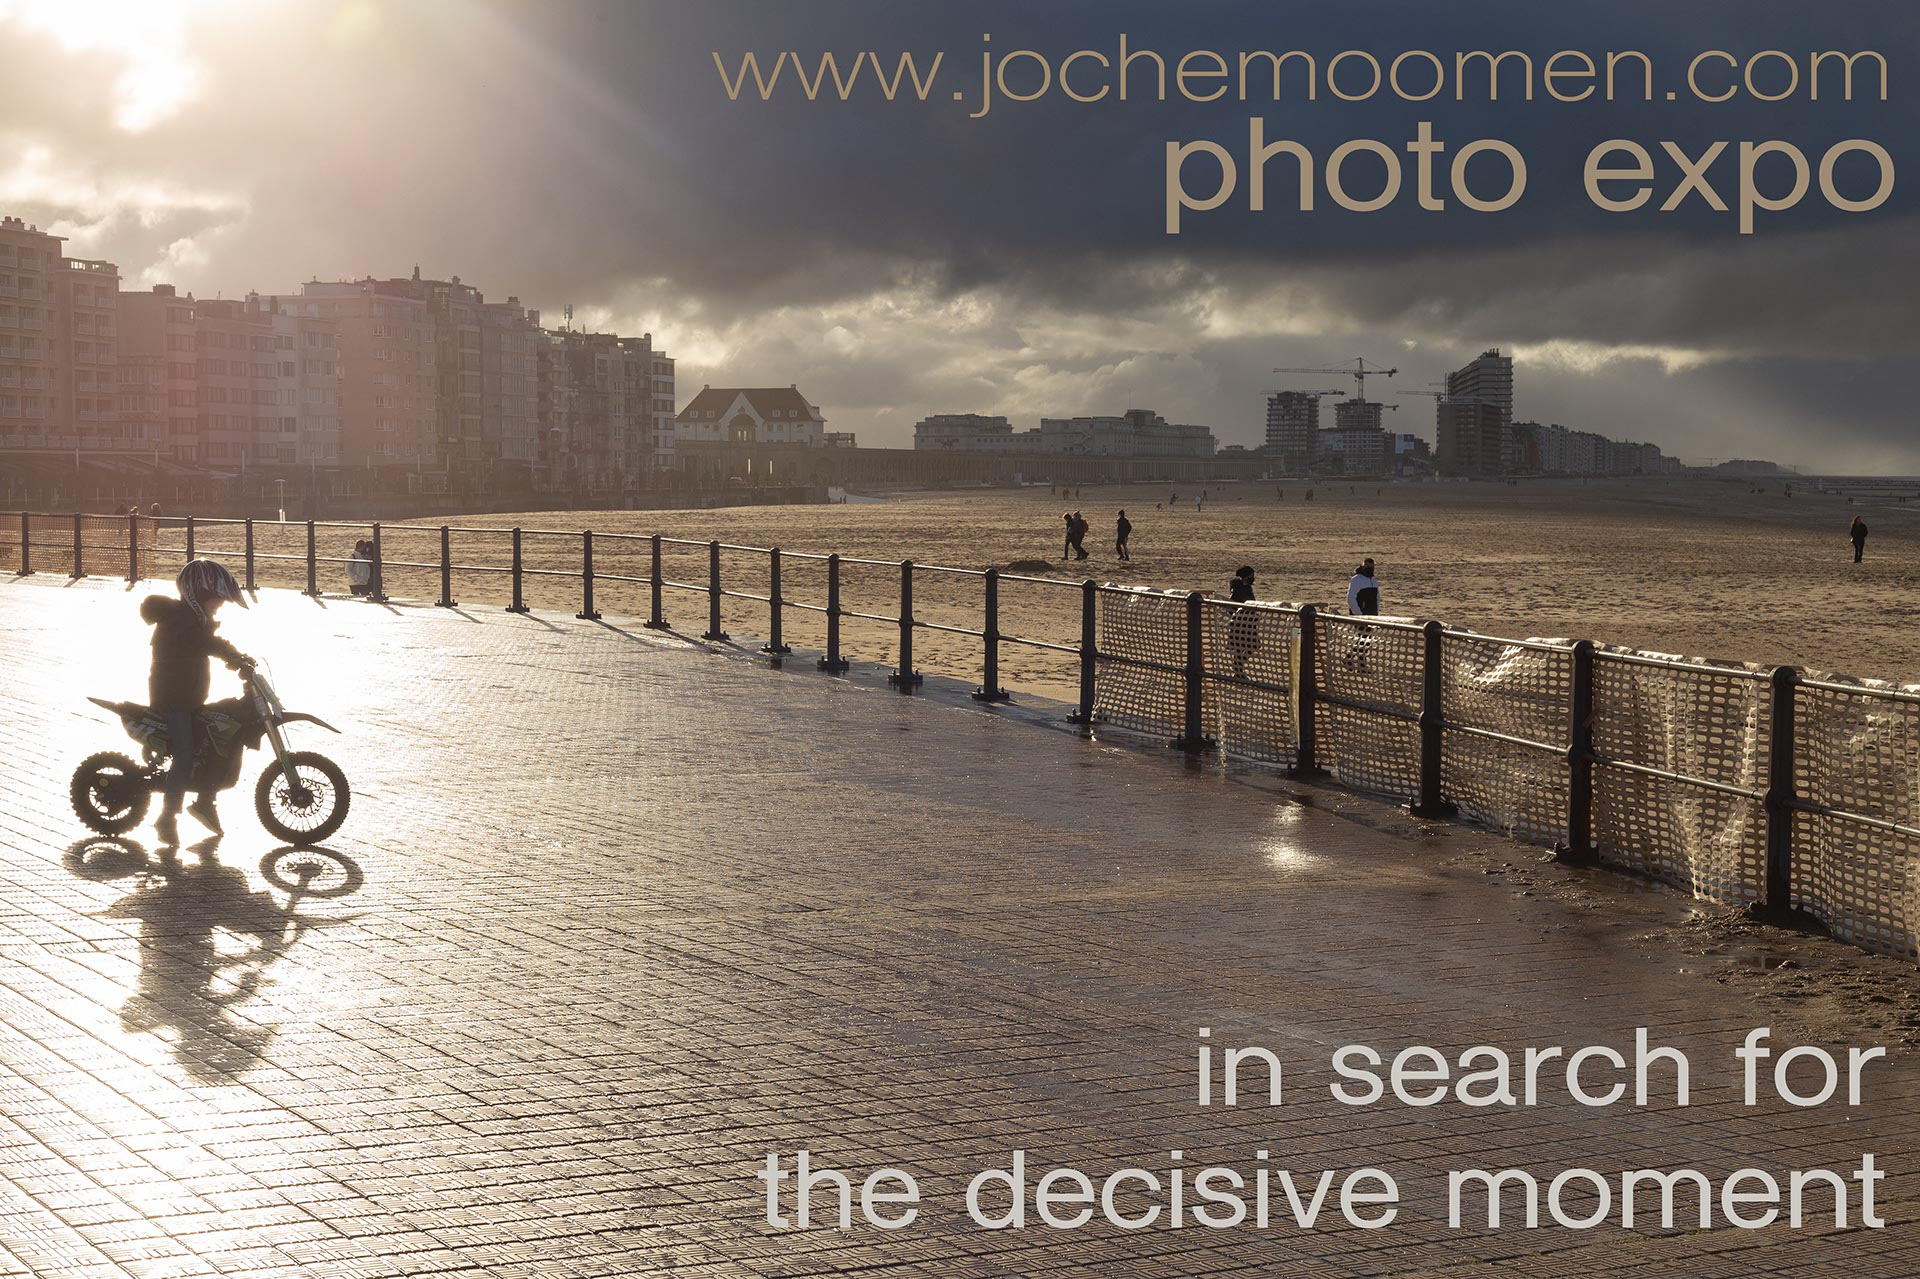 In search of the decisive moment (image: Jochem Oomen)